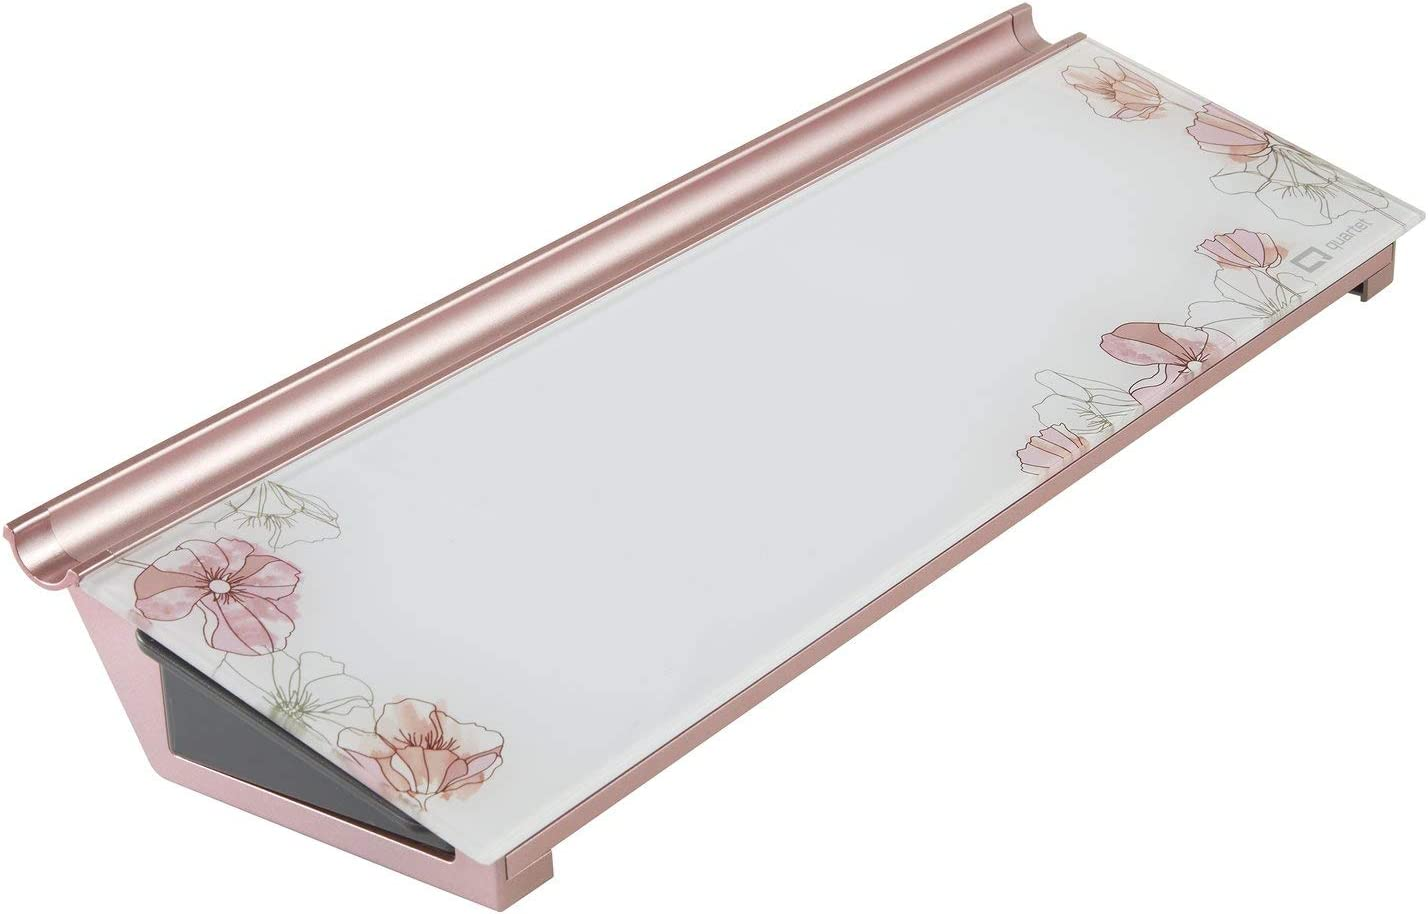 "Quartet Glass Desktop Computer Pad, 18"" x 6"", Whiteboard, Dry Erase Surface, Floral (GDP186P)"